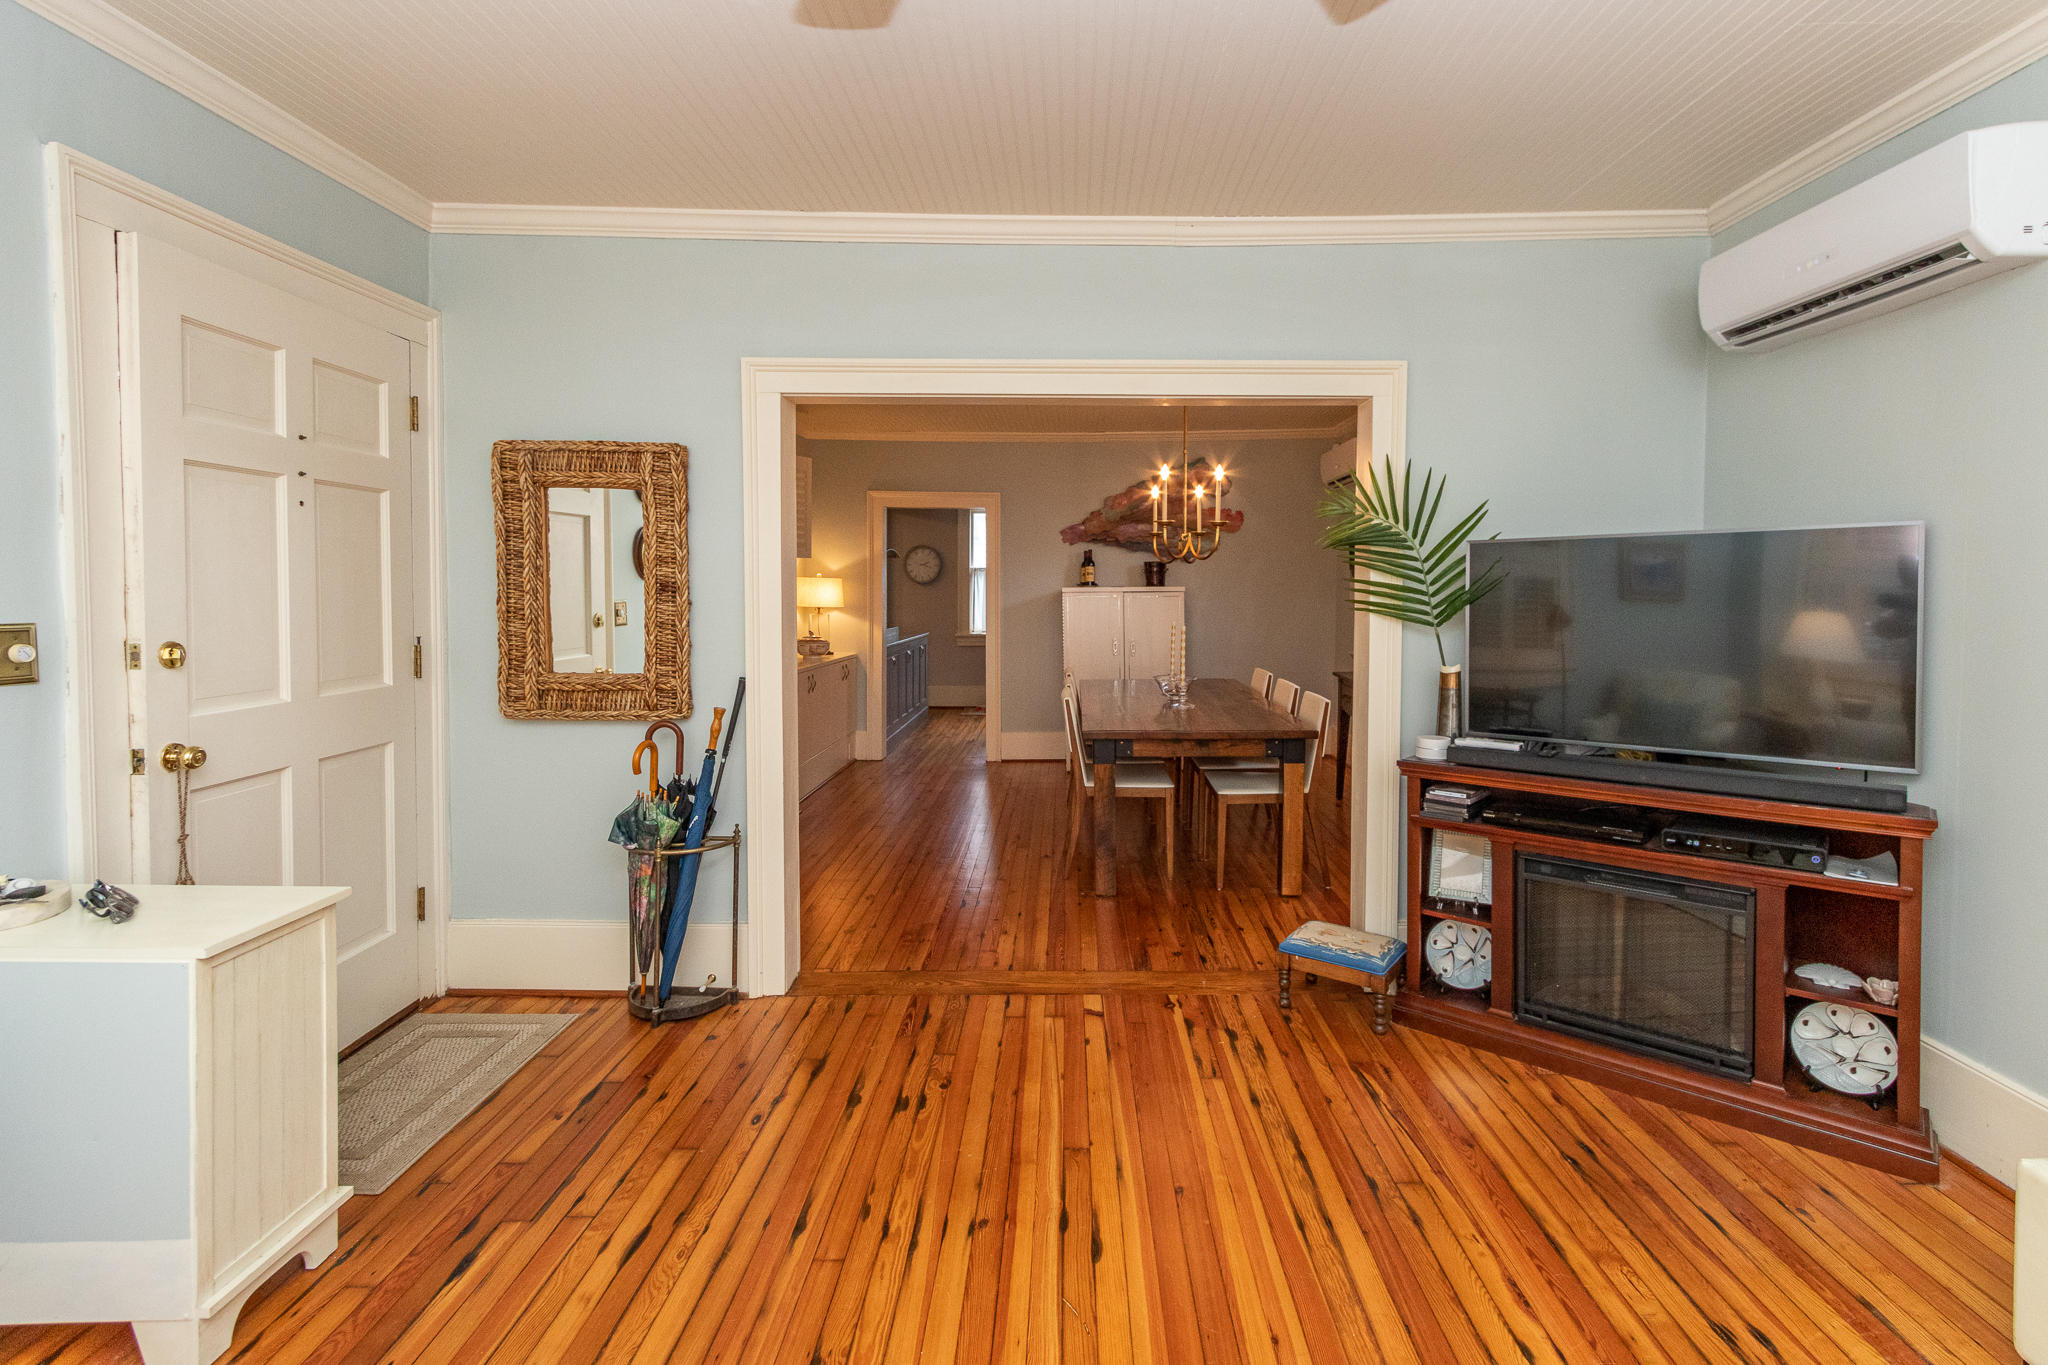 South of Broad Homes For Sale - 164 Tradd, Charleston, SC - 33